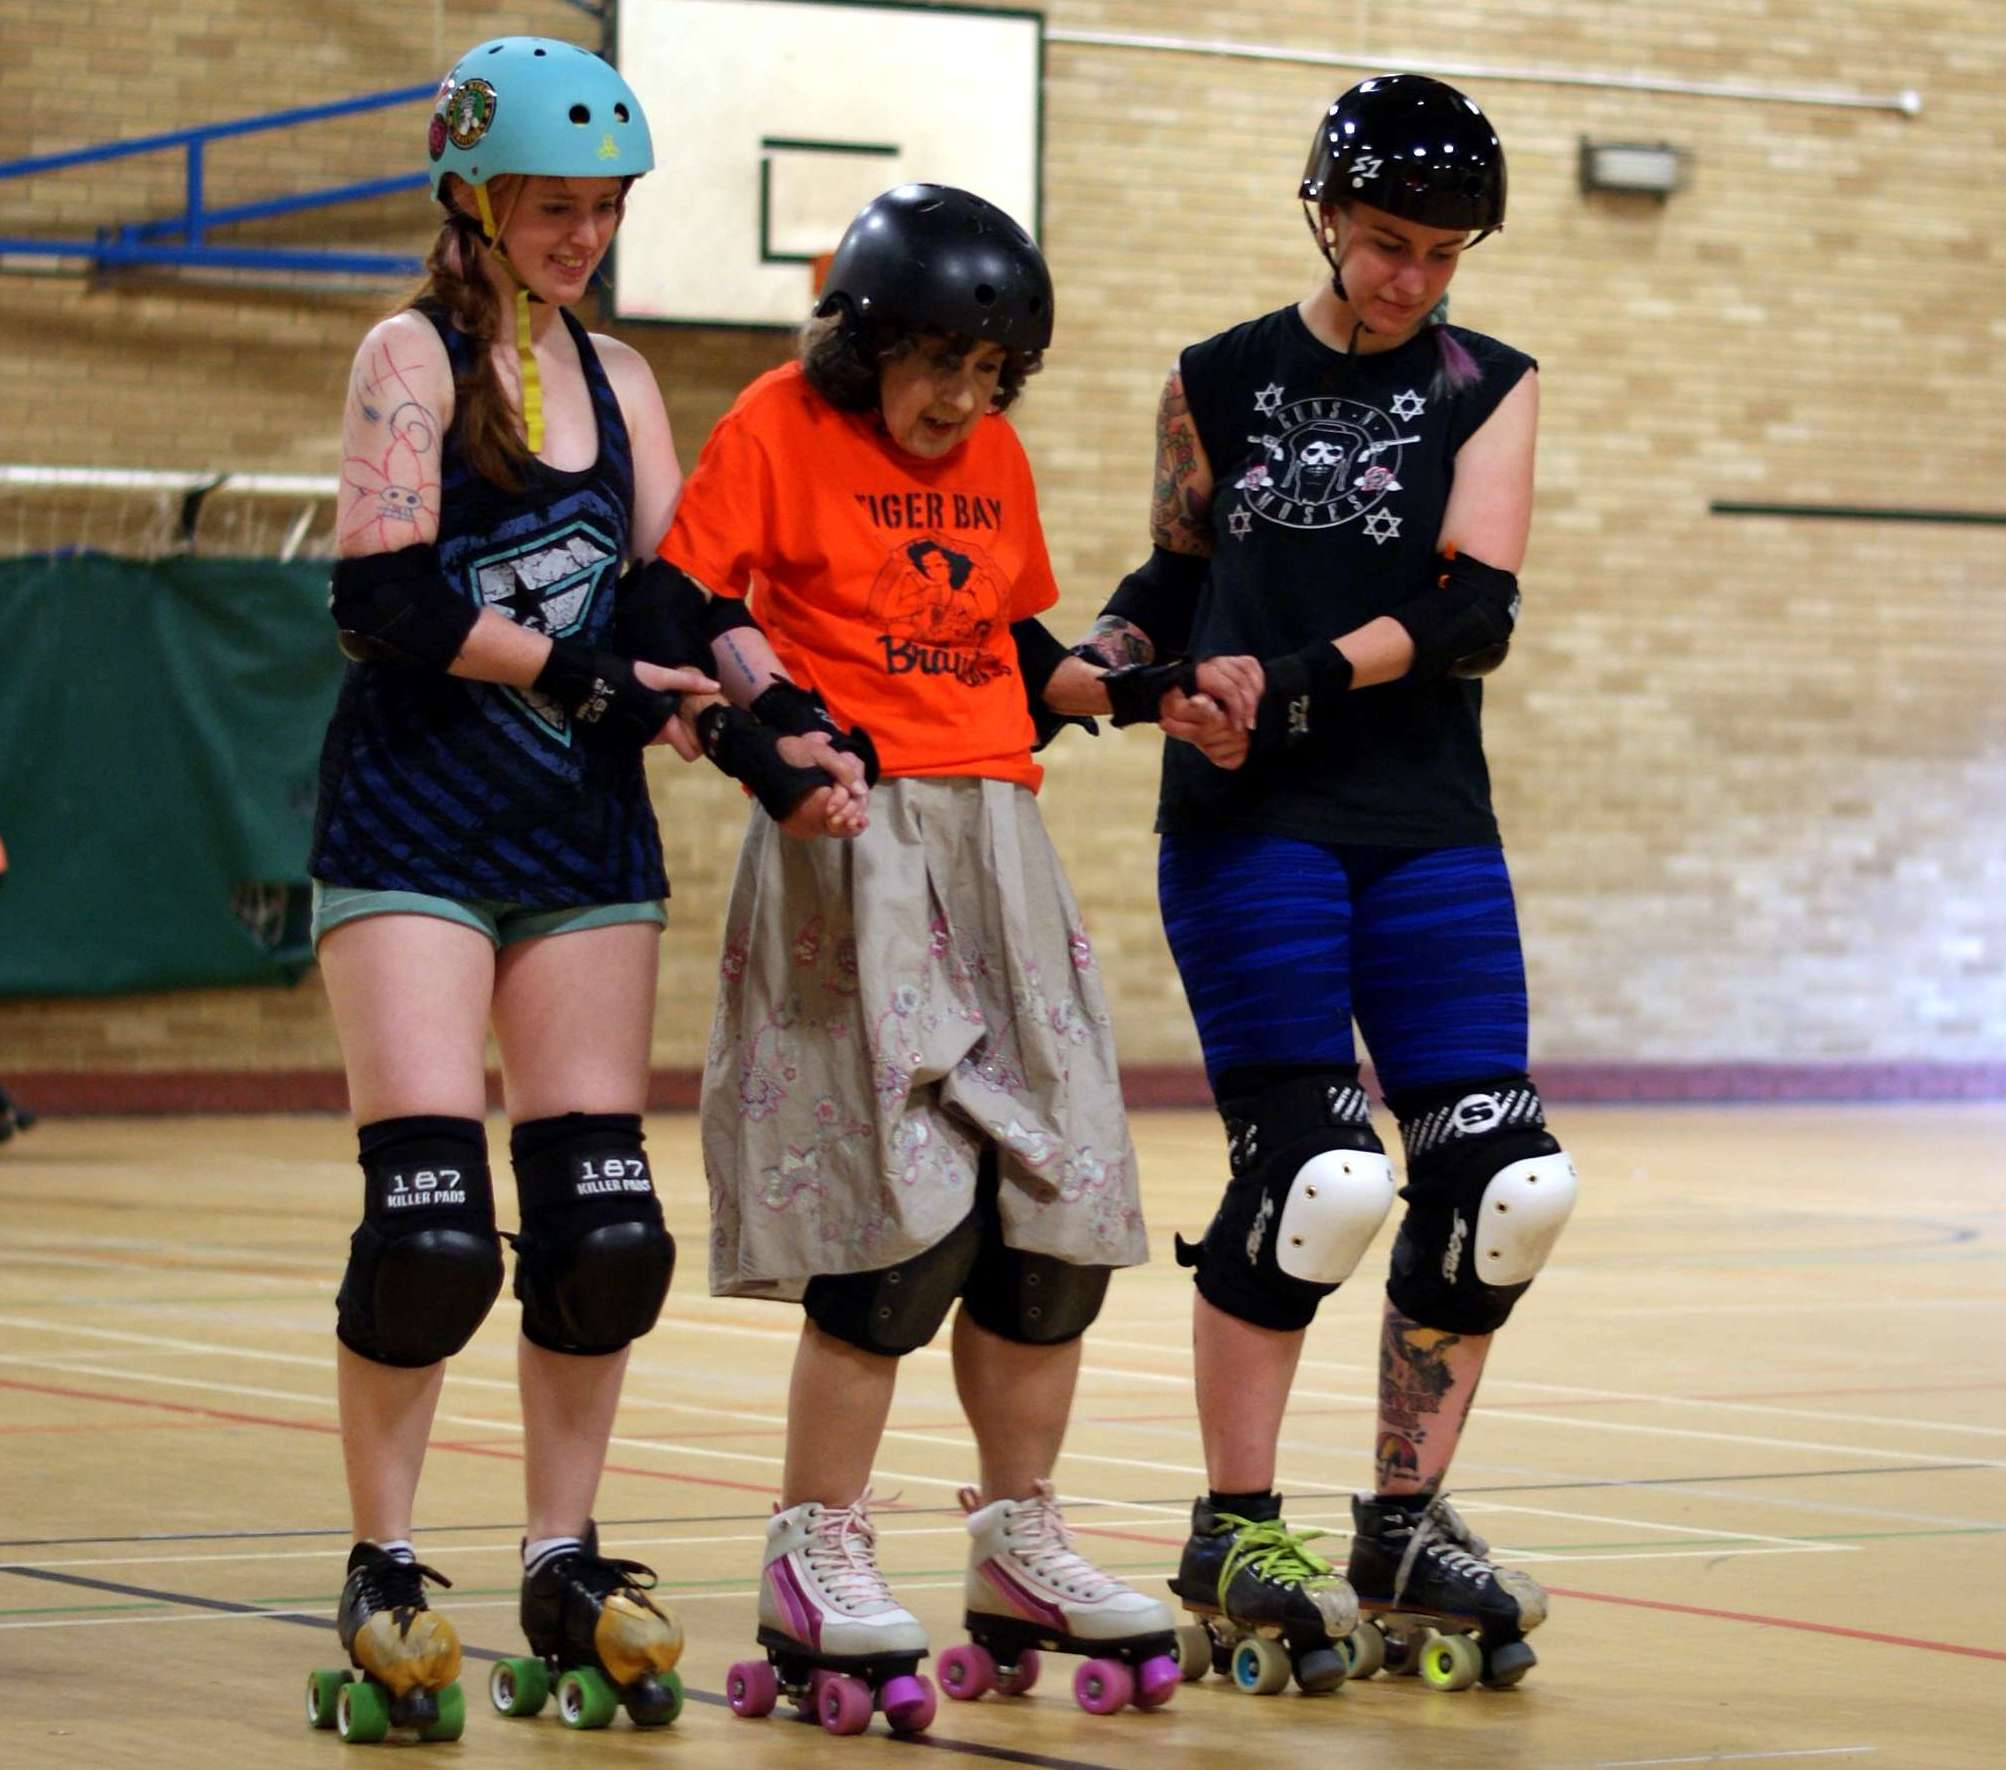 Tiger Bay Brawlers make roller skating dream come true for local pensioner